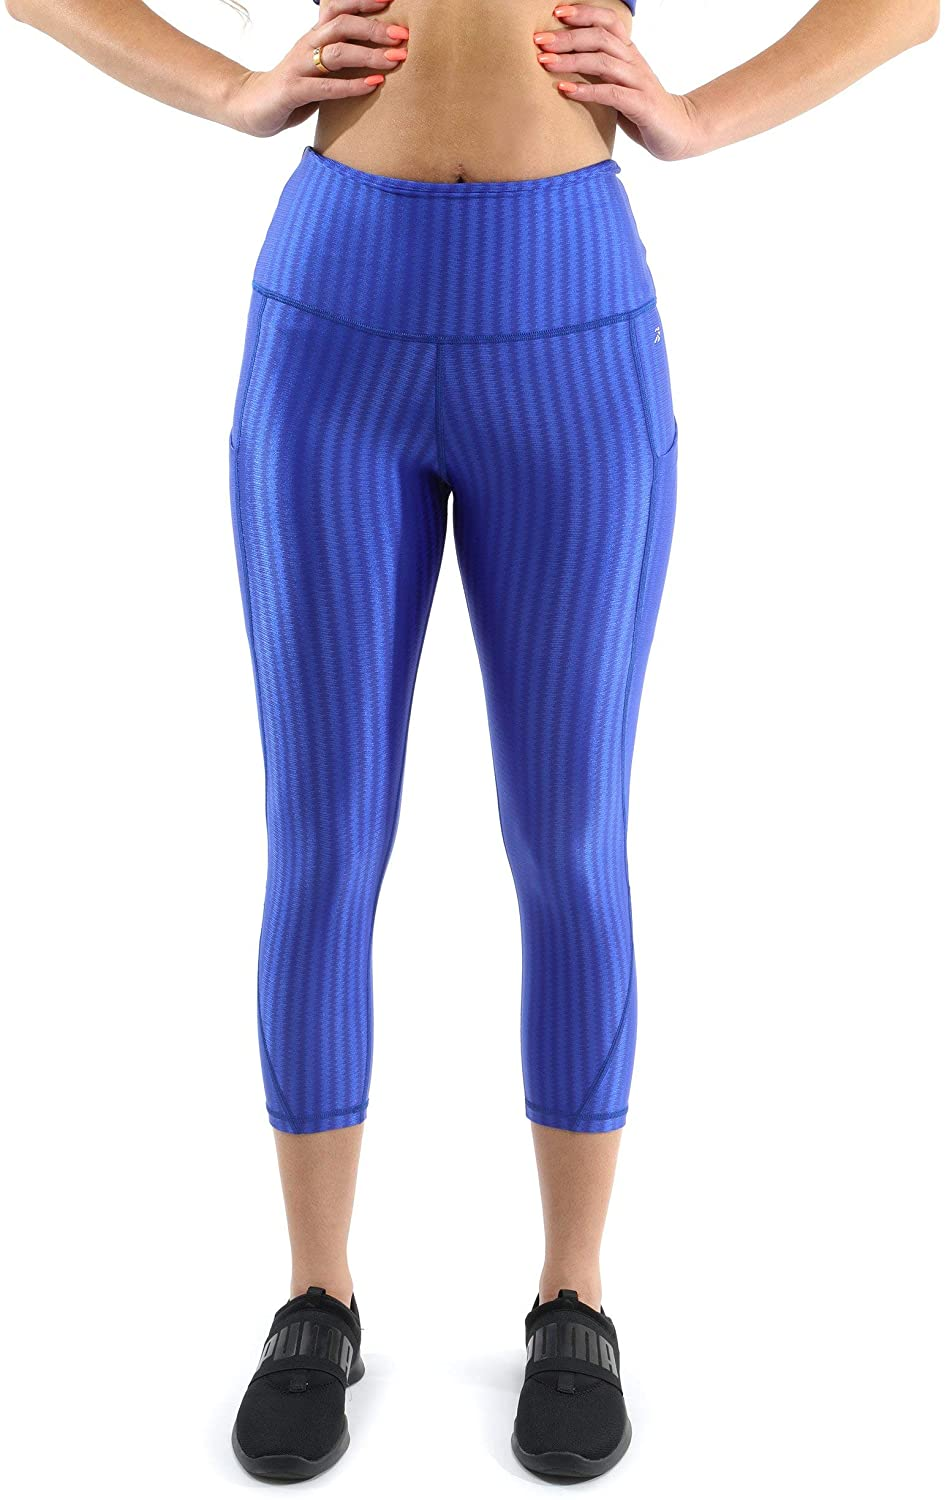 Firenze Activewear Leggings - Made in Italy - Blue